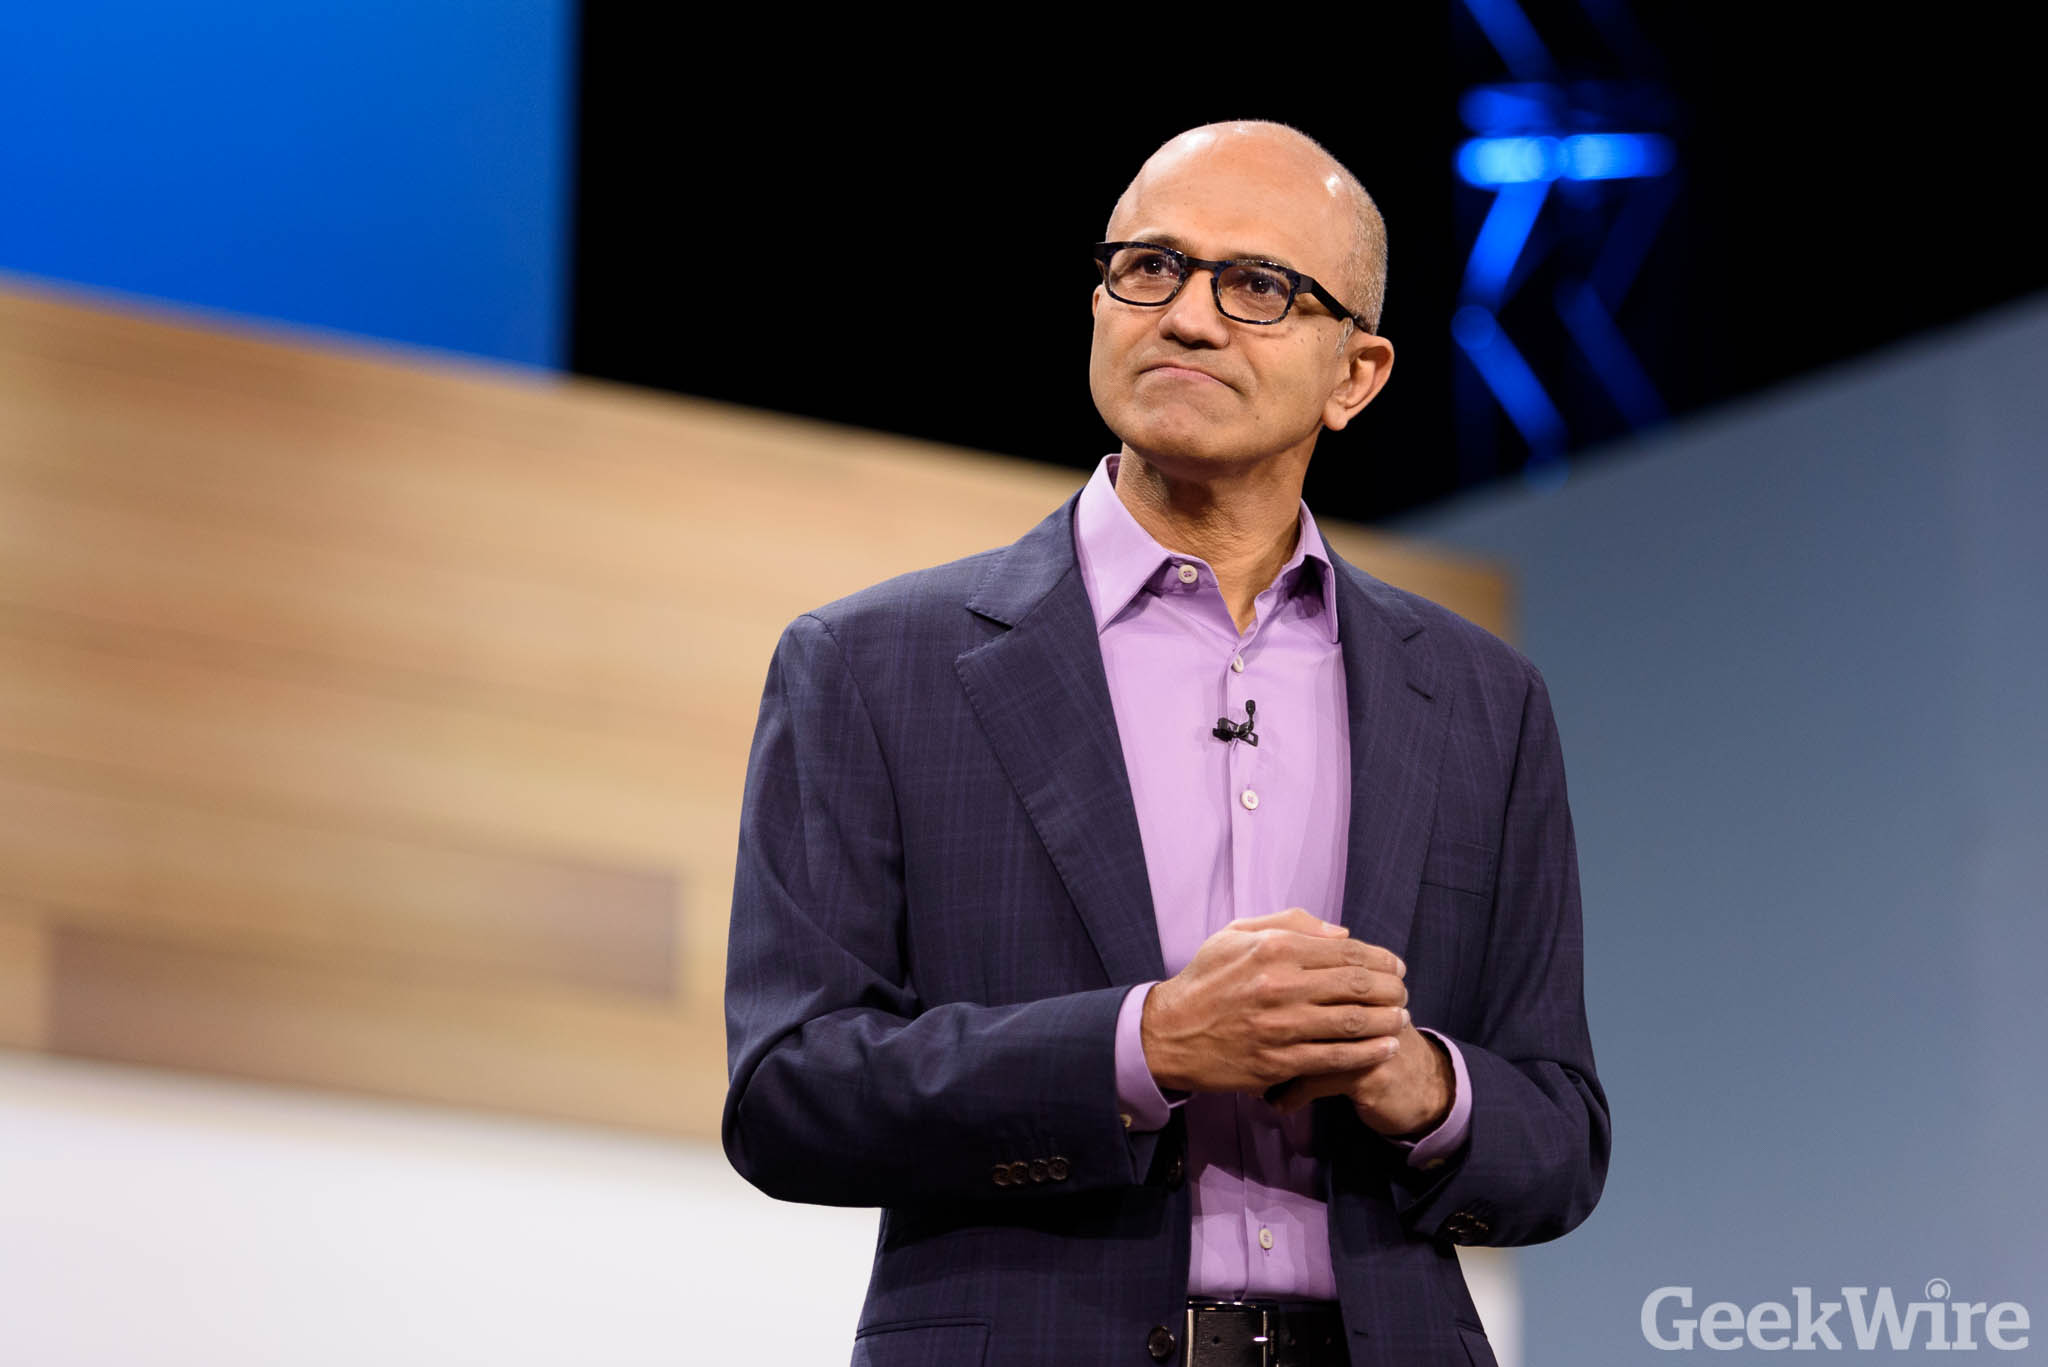 Filing shows where Microsoft is really making its money; reveals M&A spending; adds Netflix, Hulu, Tencent to list of rivals